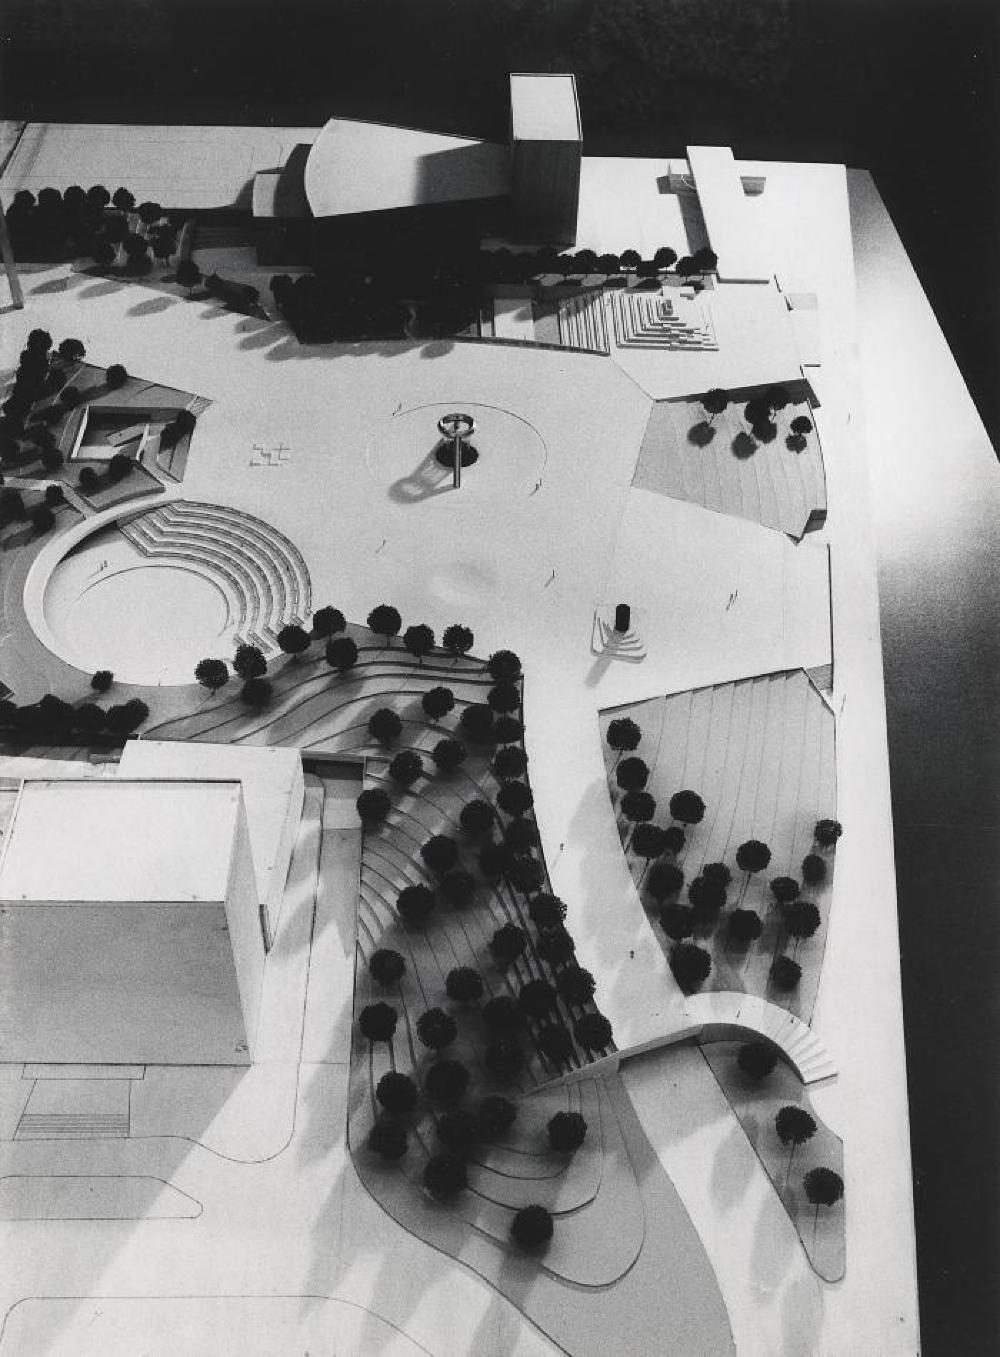 Model for Philip A. Hart Plaza, Detroit, Michigan, image 2